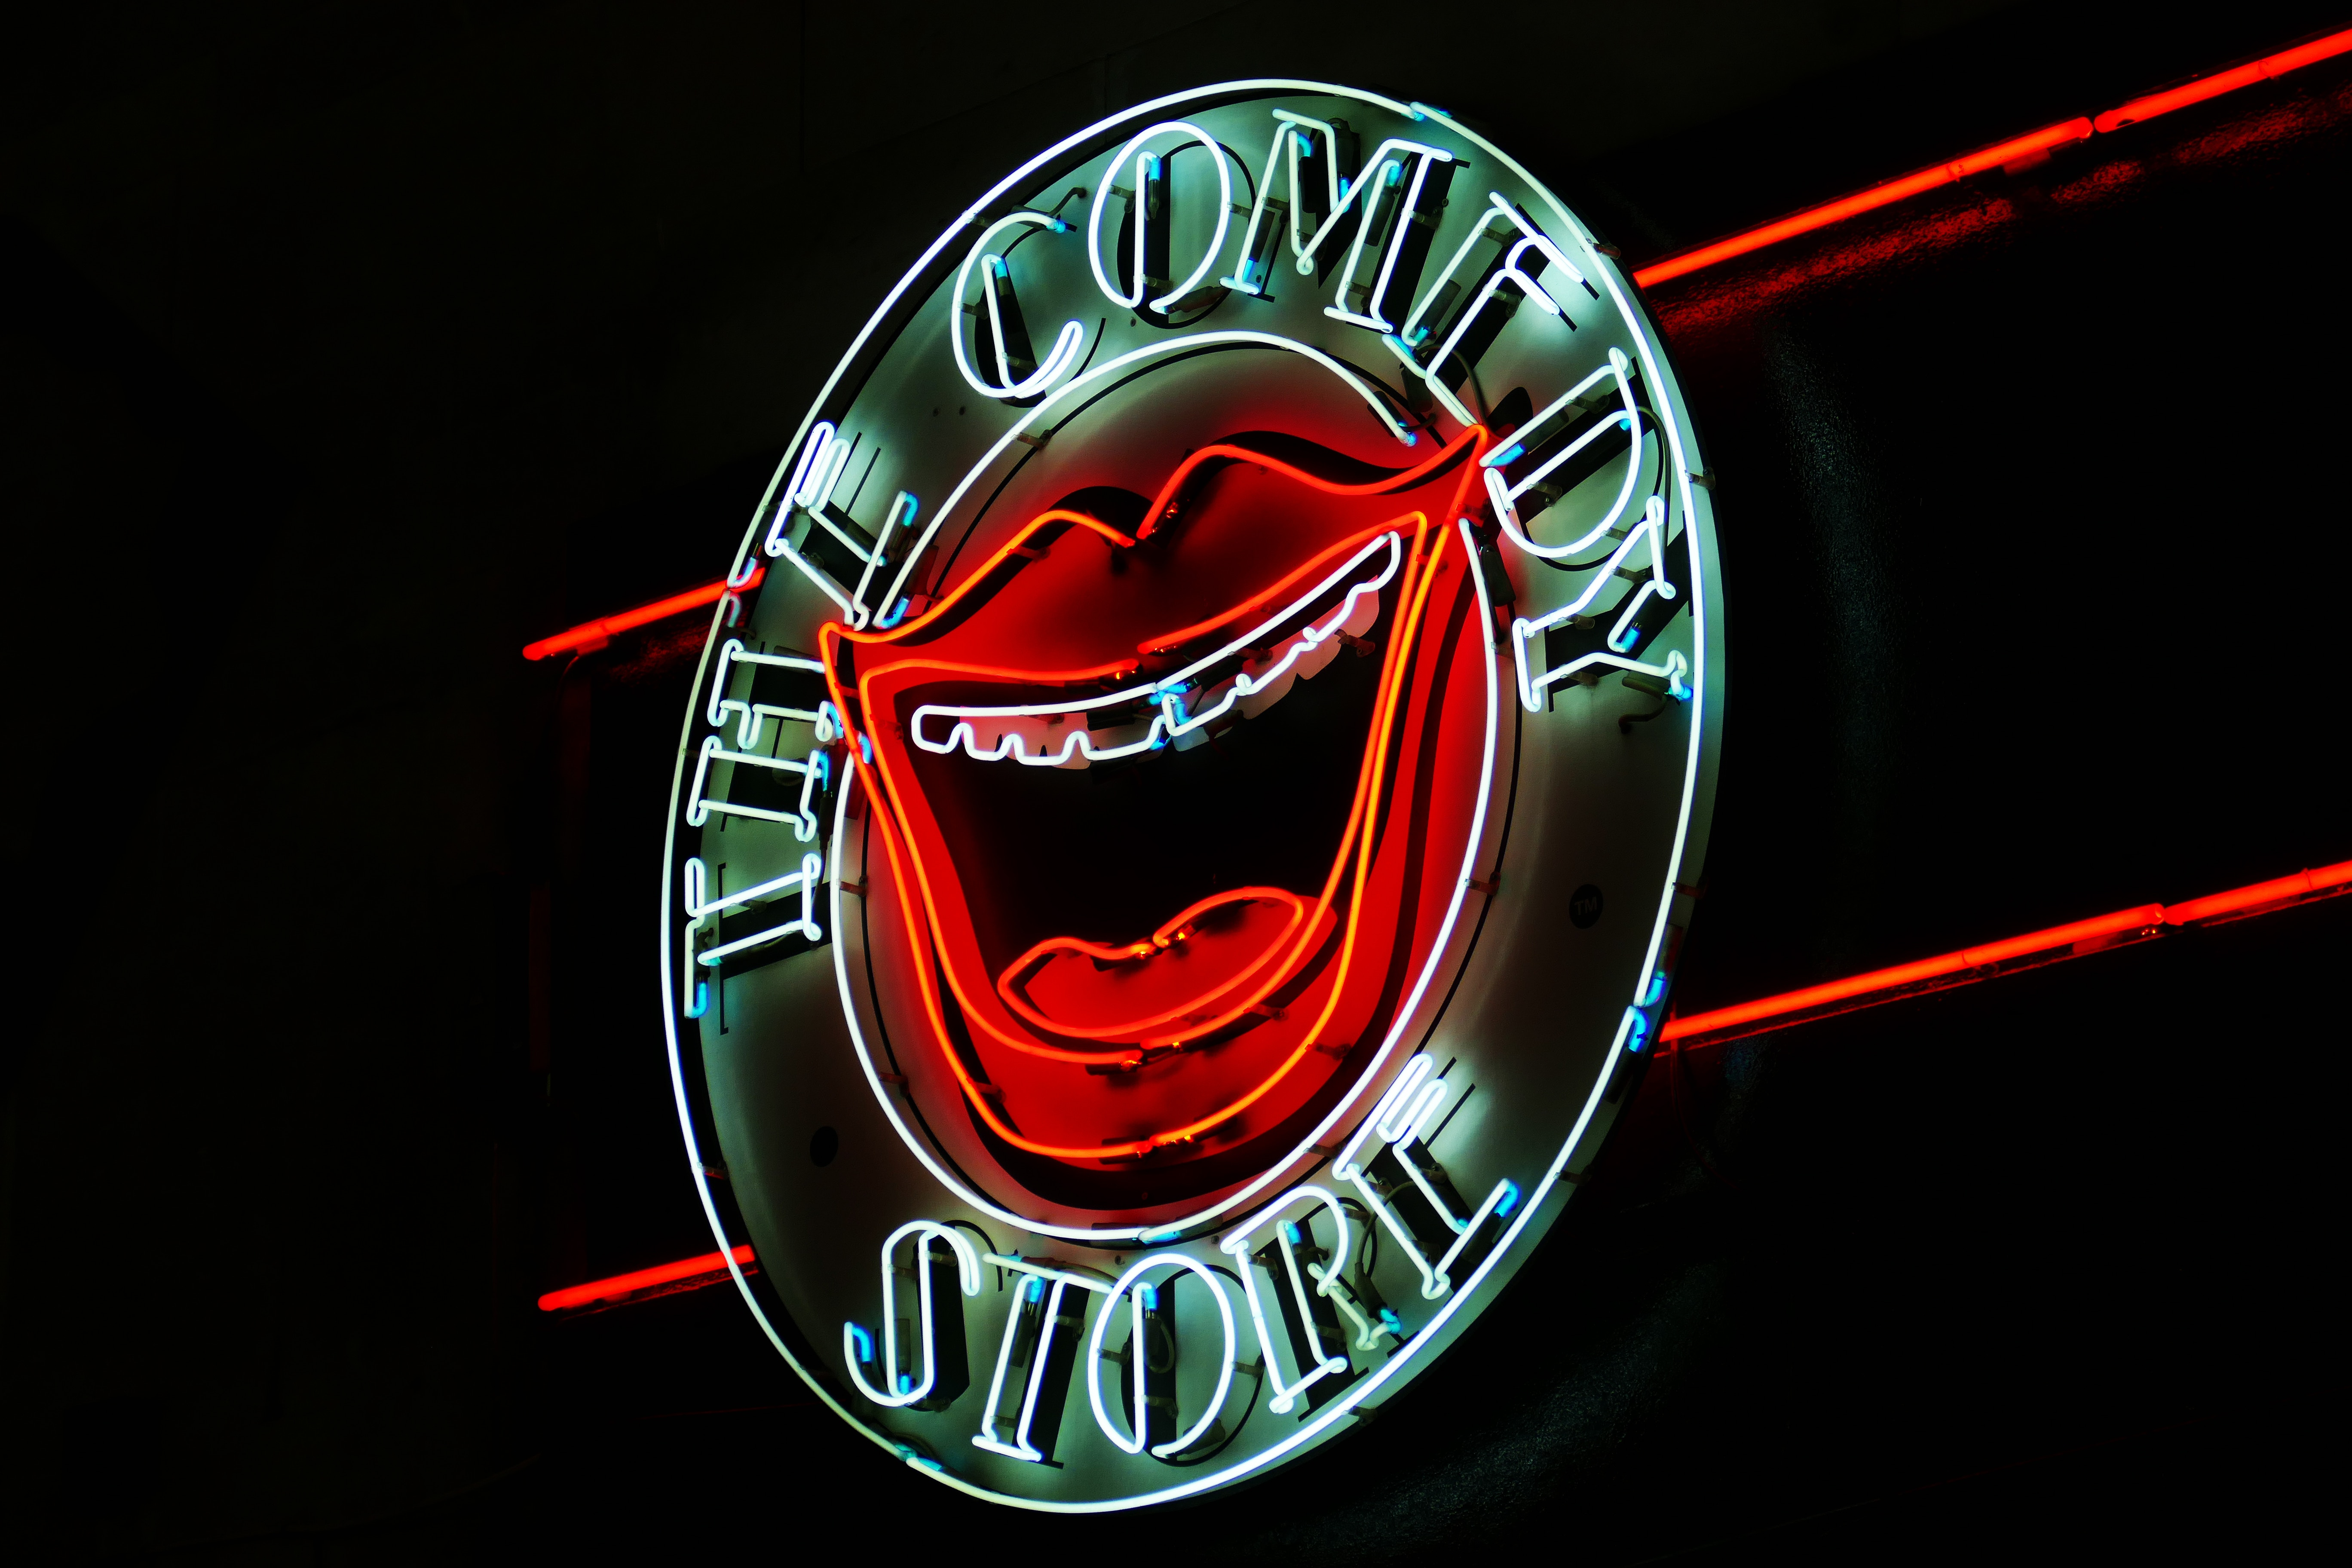 The Comedy House in Soho London